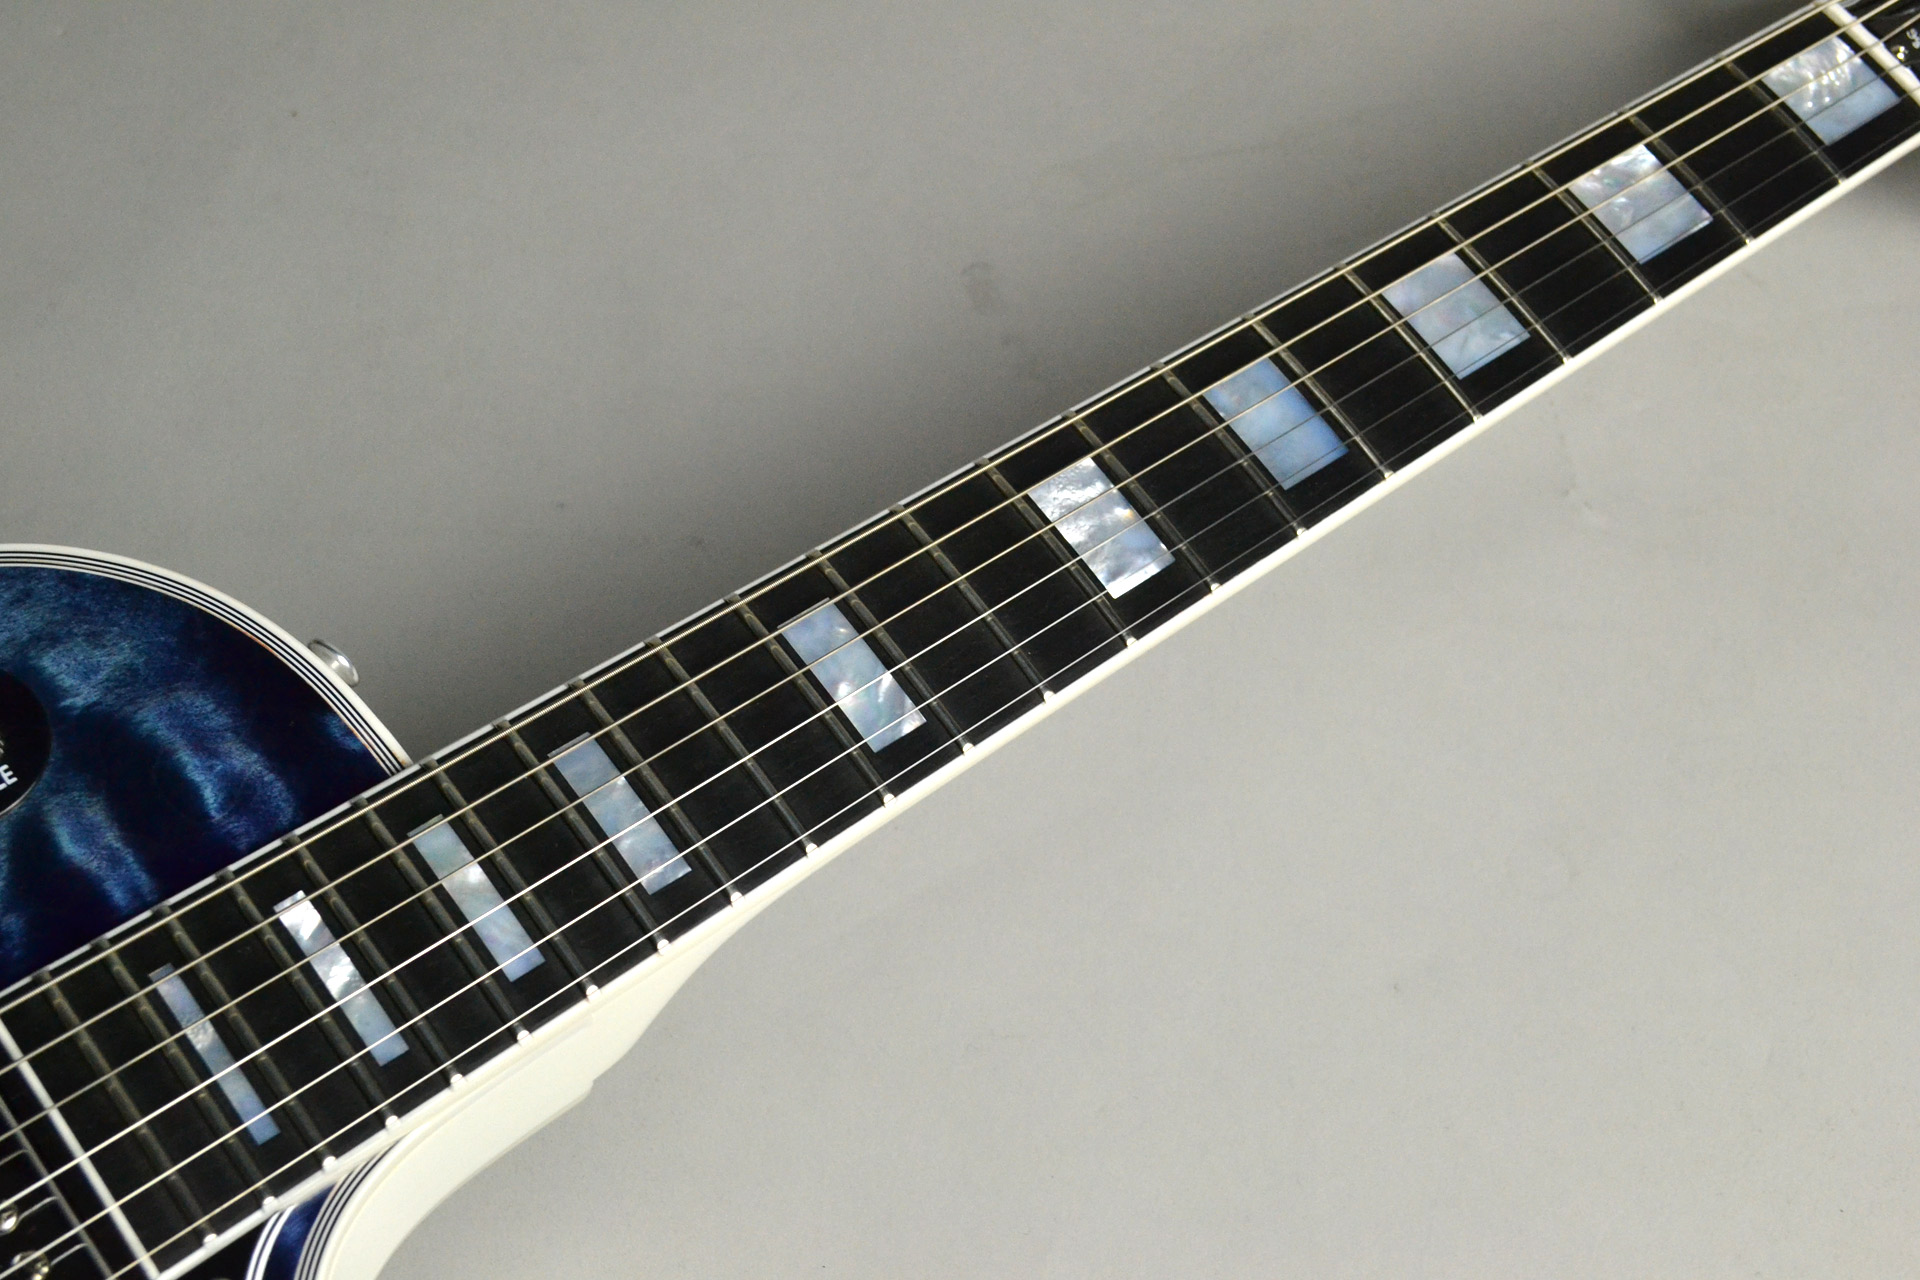 Les Paul Custom 3A Quilt Top Nordic Blue/Alpine White 【ホワイトバック!】の指板画像